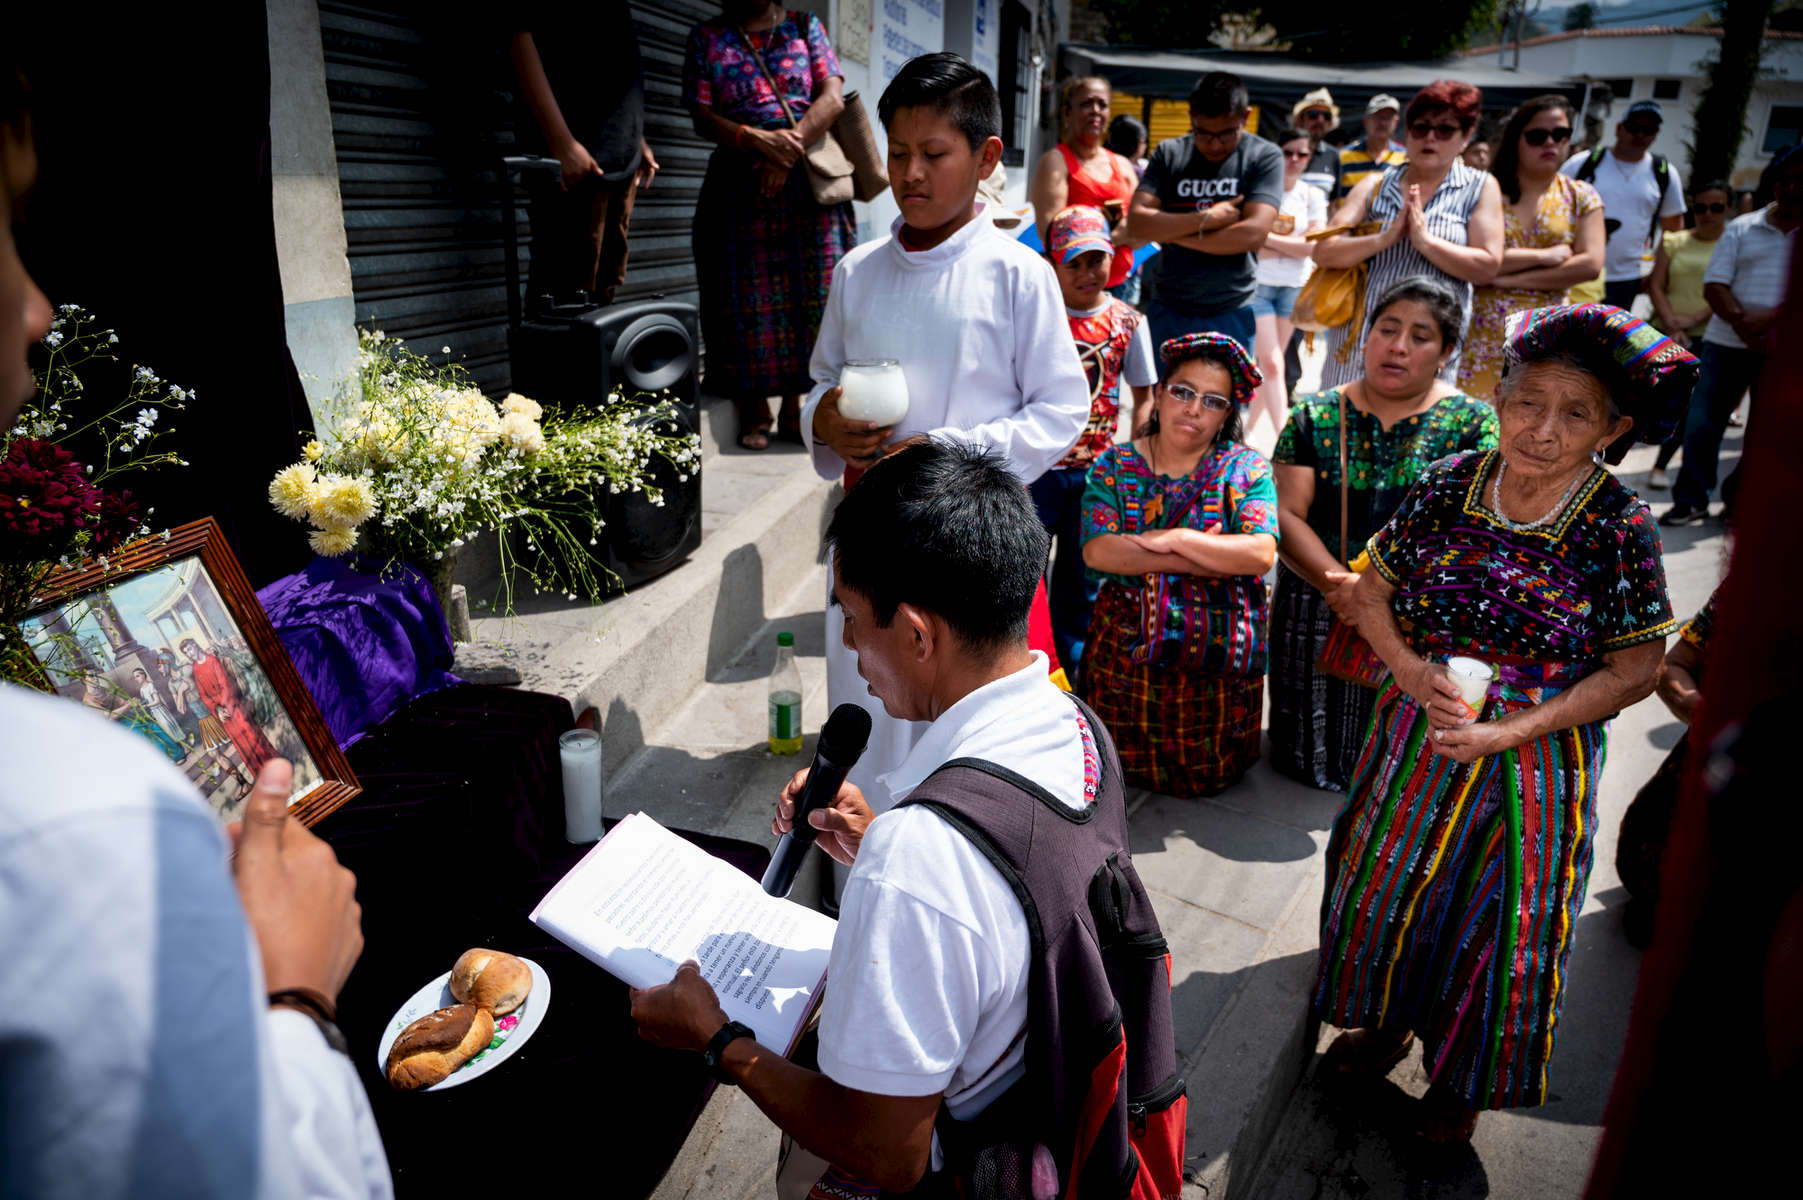 Parishioners listen as a prayer is offered during a procession on Good Friday in Panajachel, Guatemala.